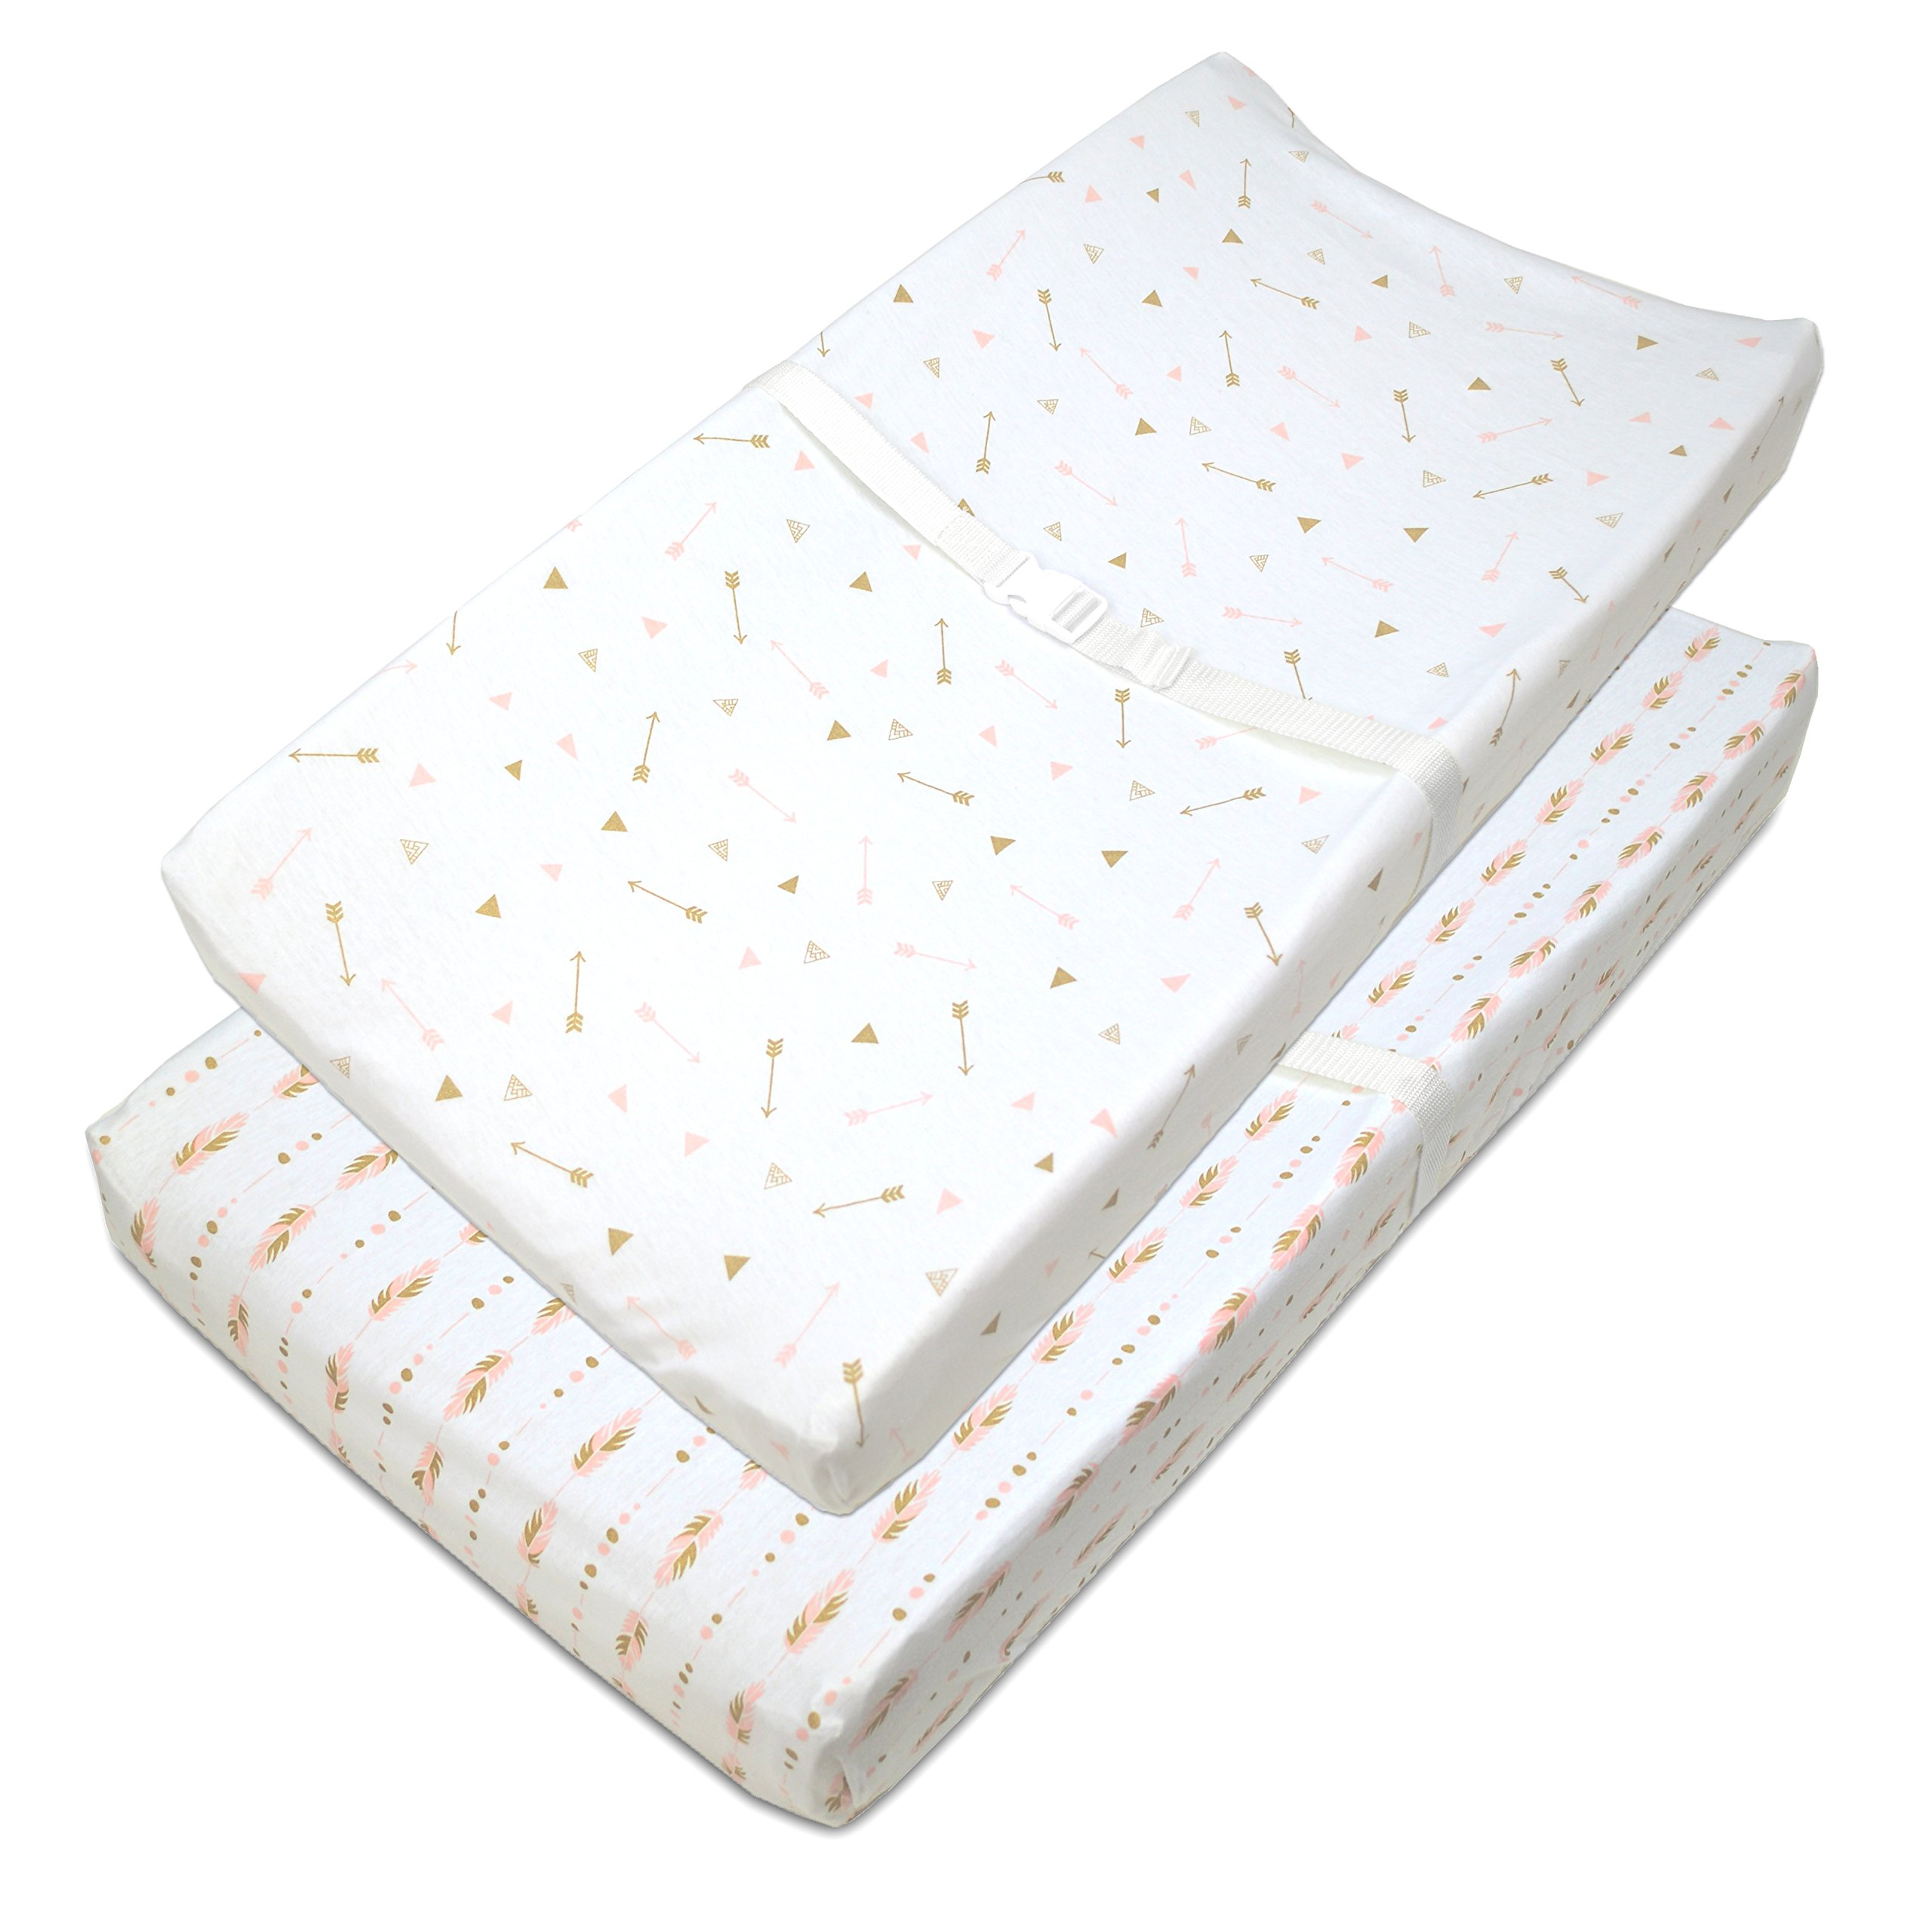 American Baby Company 2 Piece Printed 100% Cotton Jersey Knit Fitted Contoured Changing Table Pad Cover, also works with Travel Lite Mattress, Sparkle Gold/Pink Feathers/Arrows